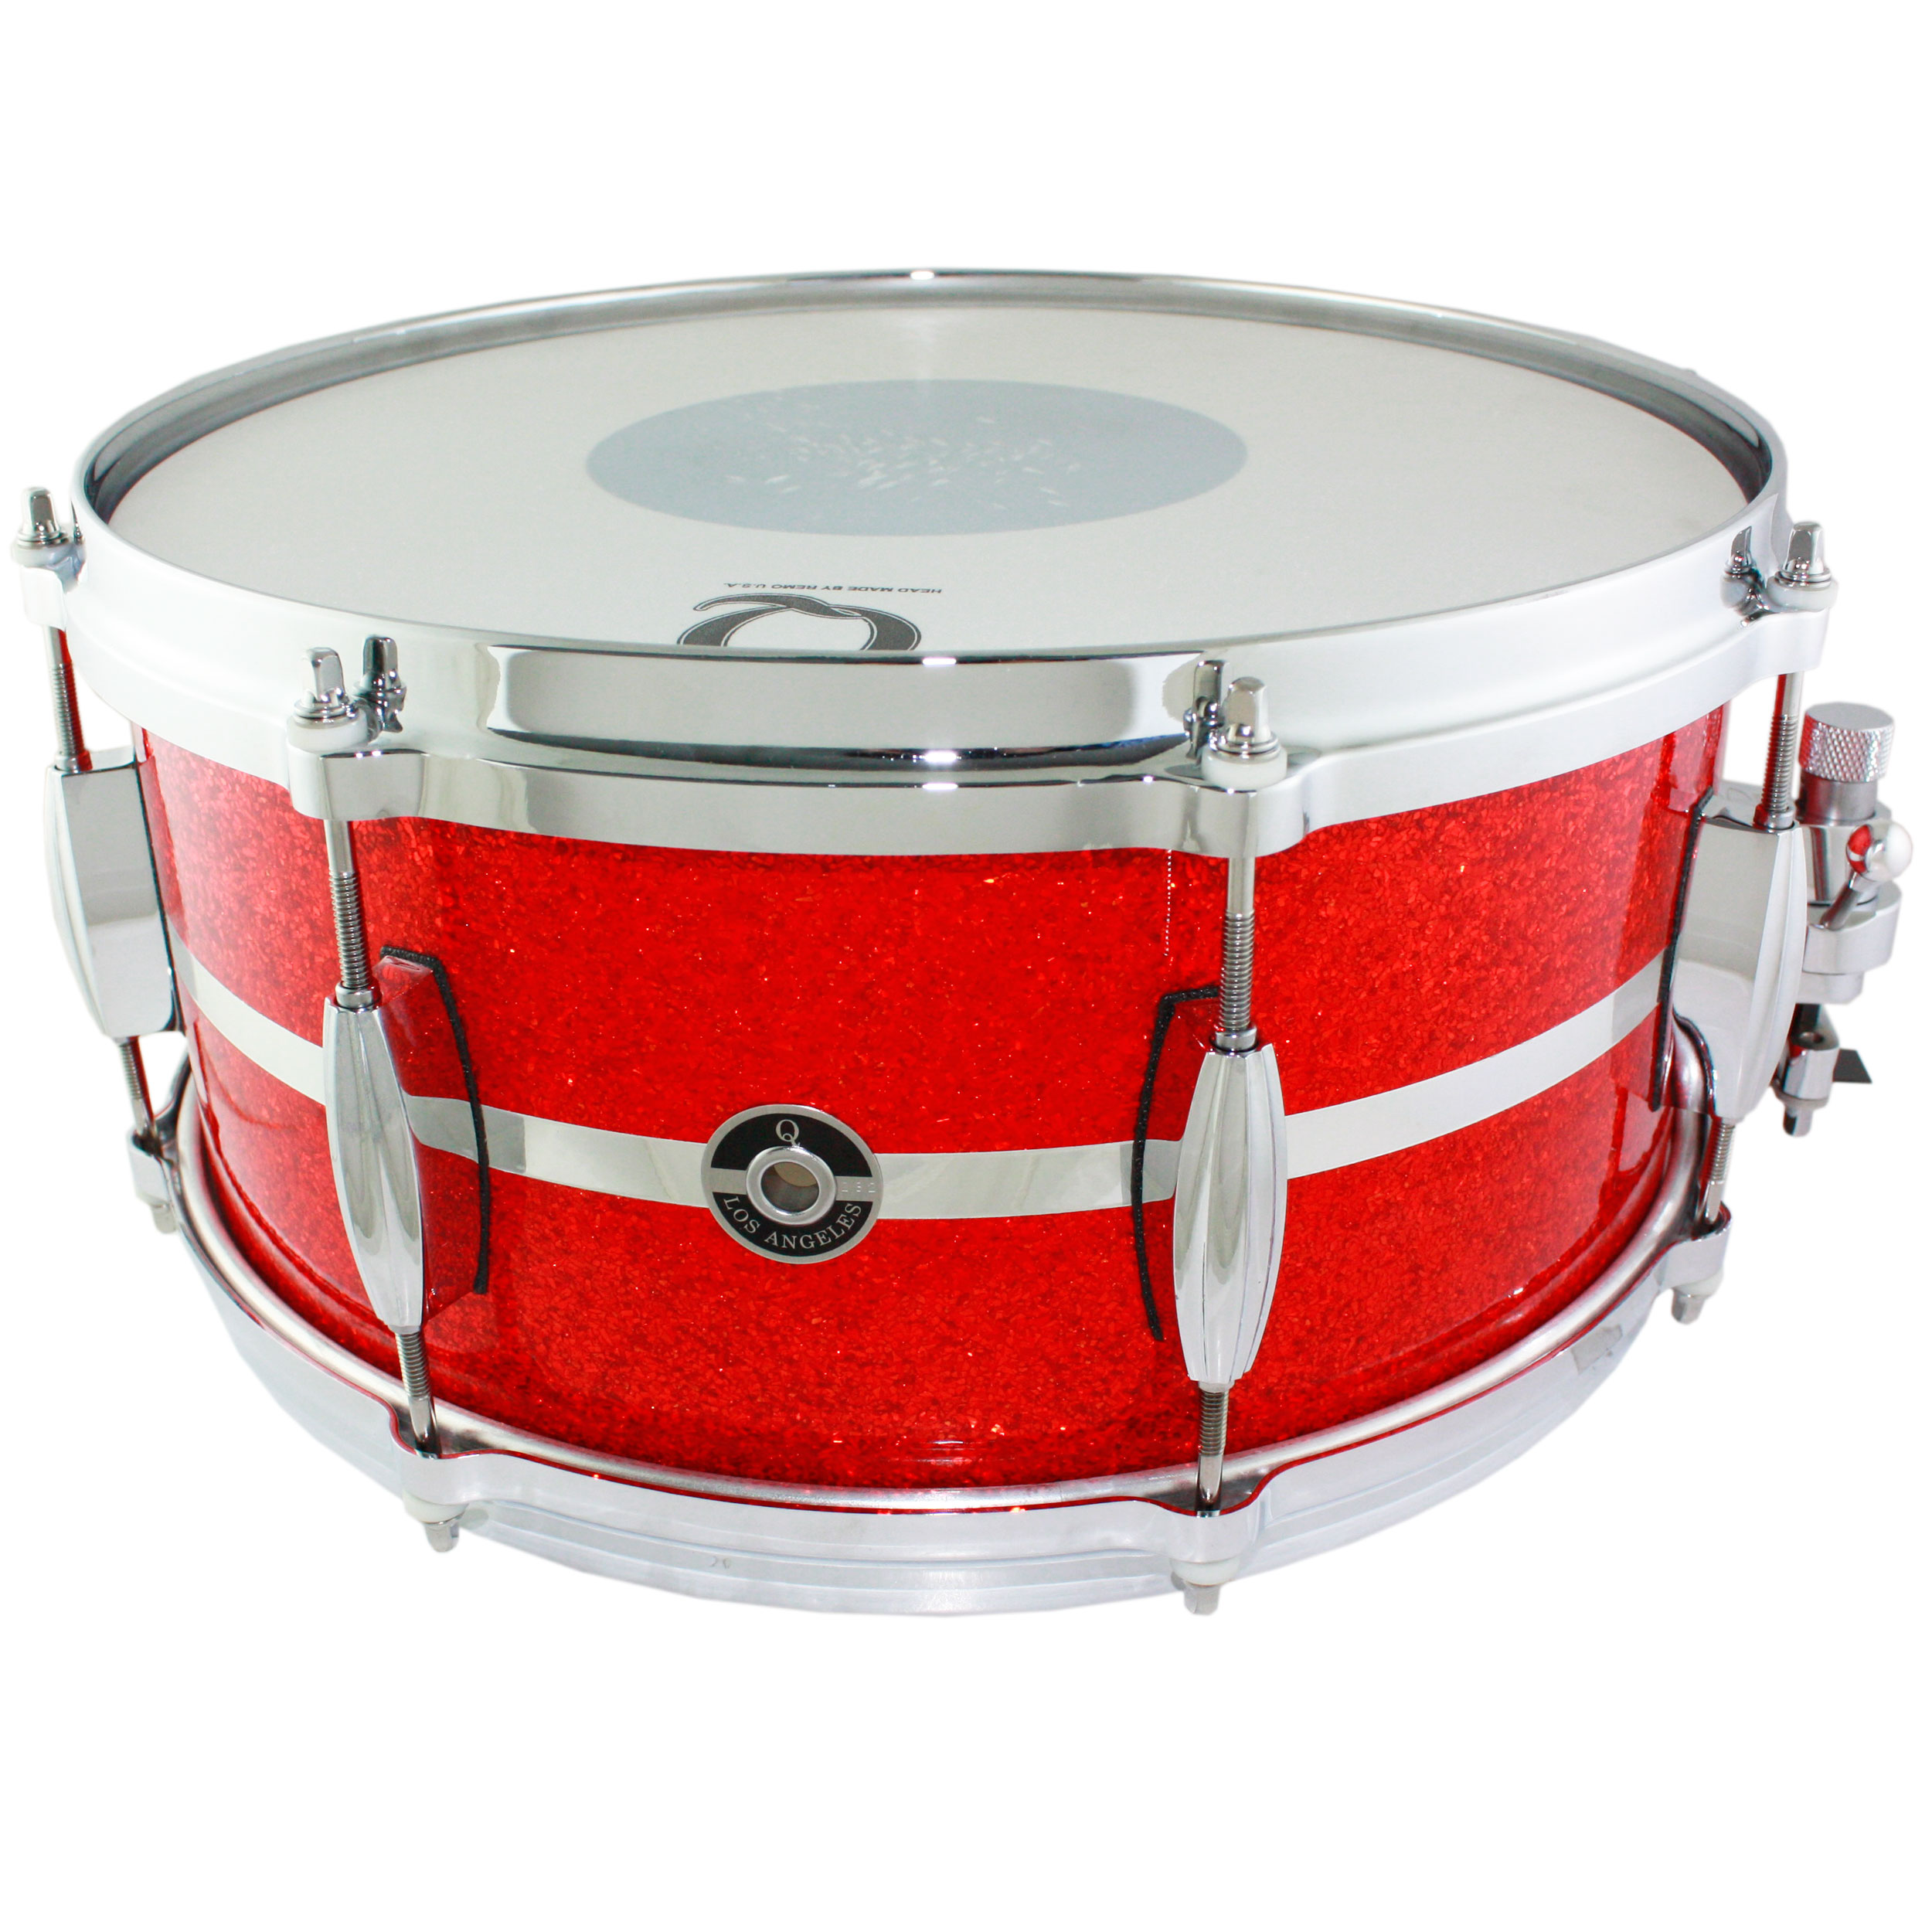 """Q Drum Co. 6.5""""x 14"""" Maple Snare Drum in Tangerine Glass Glitter with Chrome Inlay"""